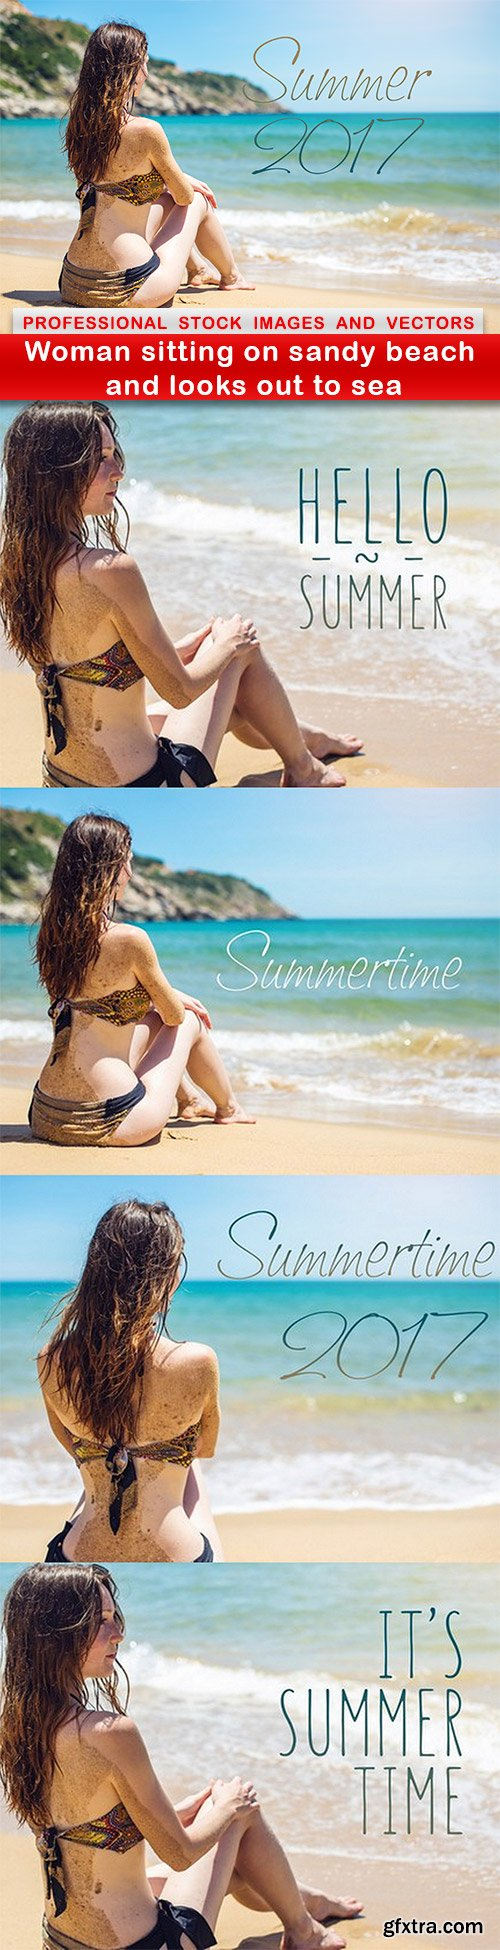 Woman sitting on sandy beach and looks out to sea - 5 UHQ JPEG